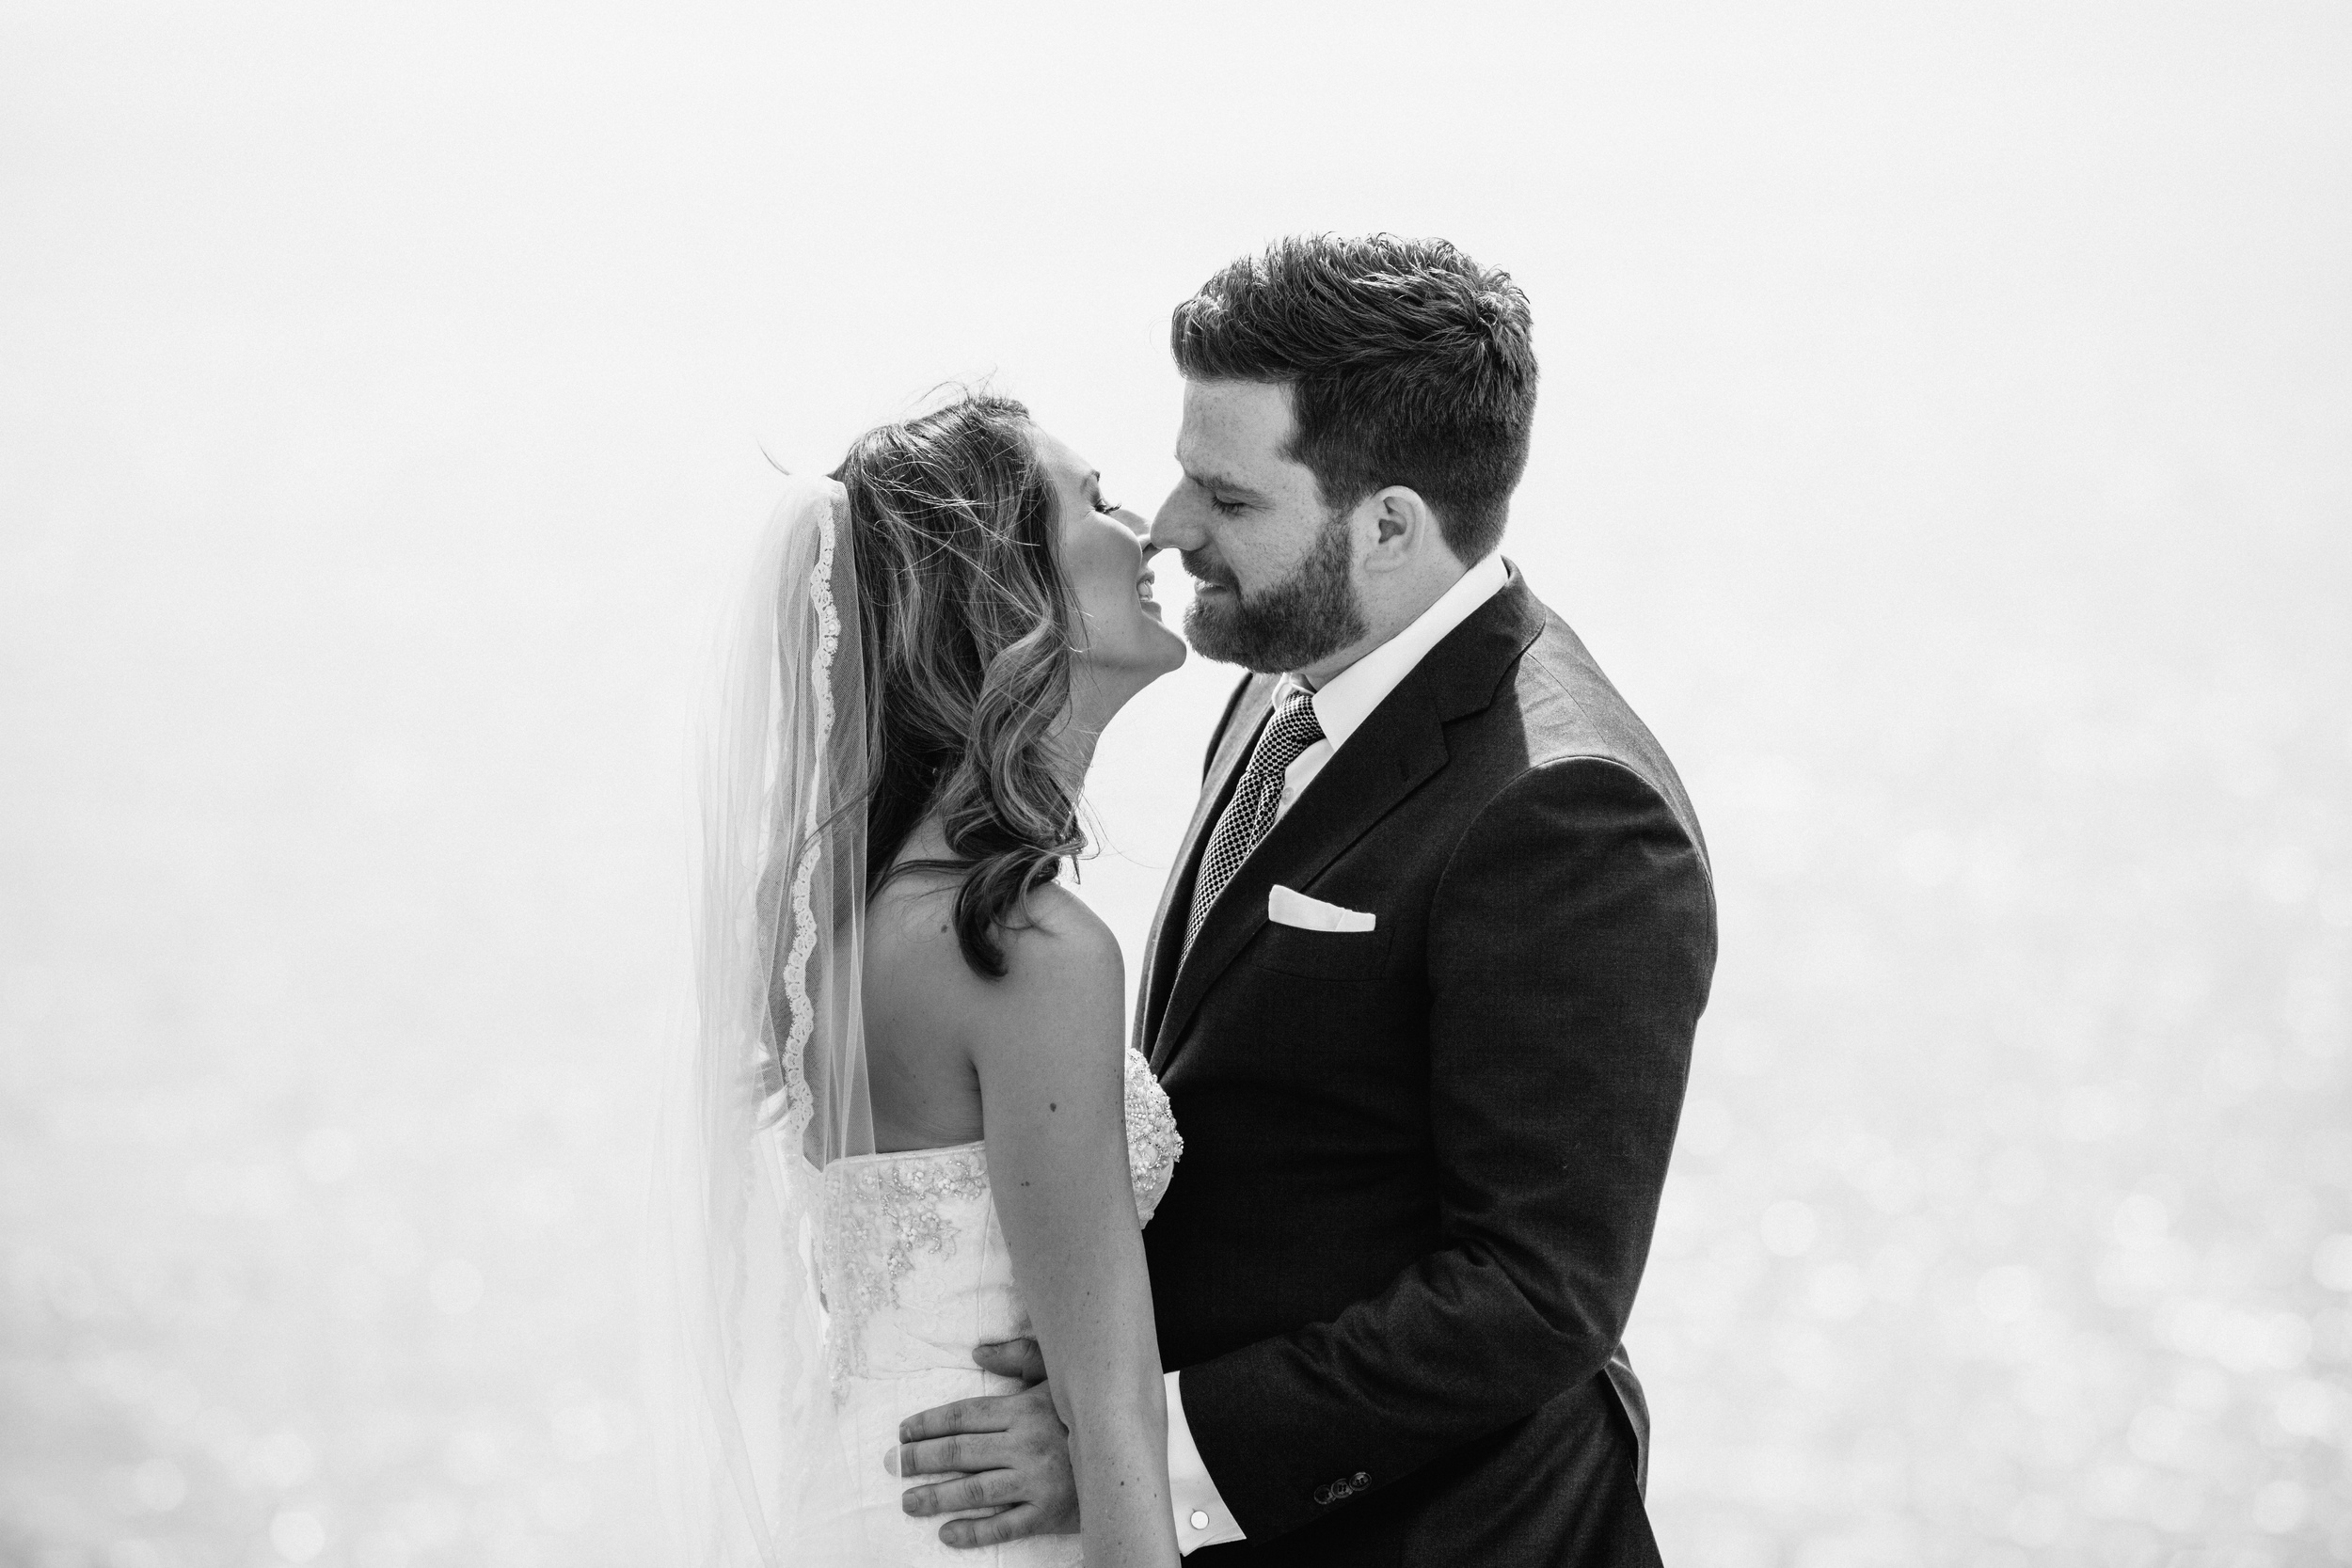 Wedding Photography. DIY Wedding at Point Dume, Malibu with Bryce and Kelsey